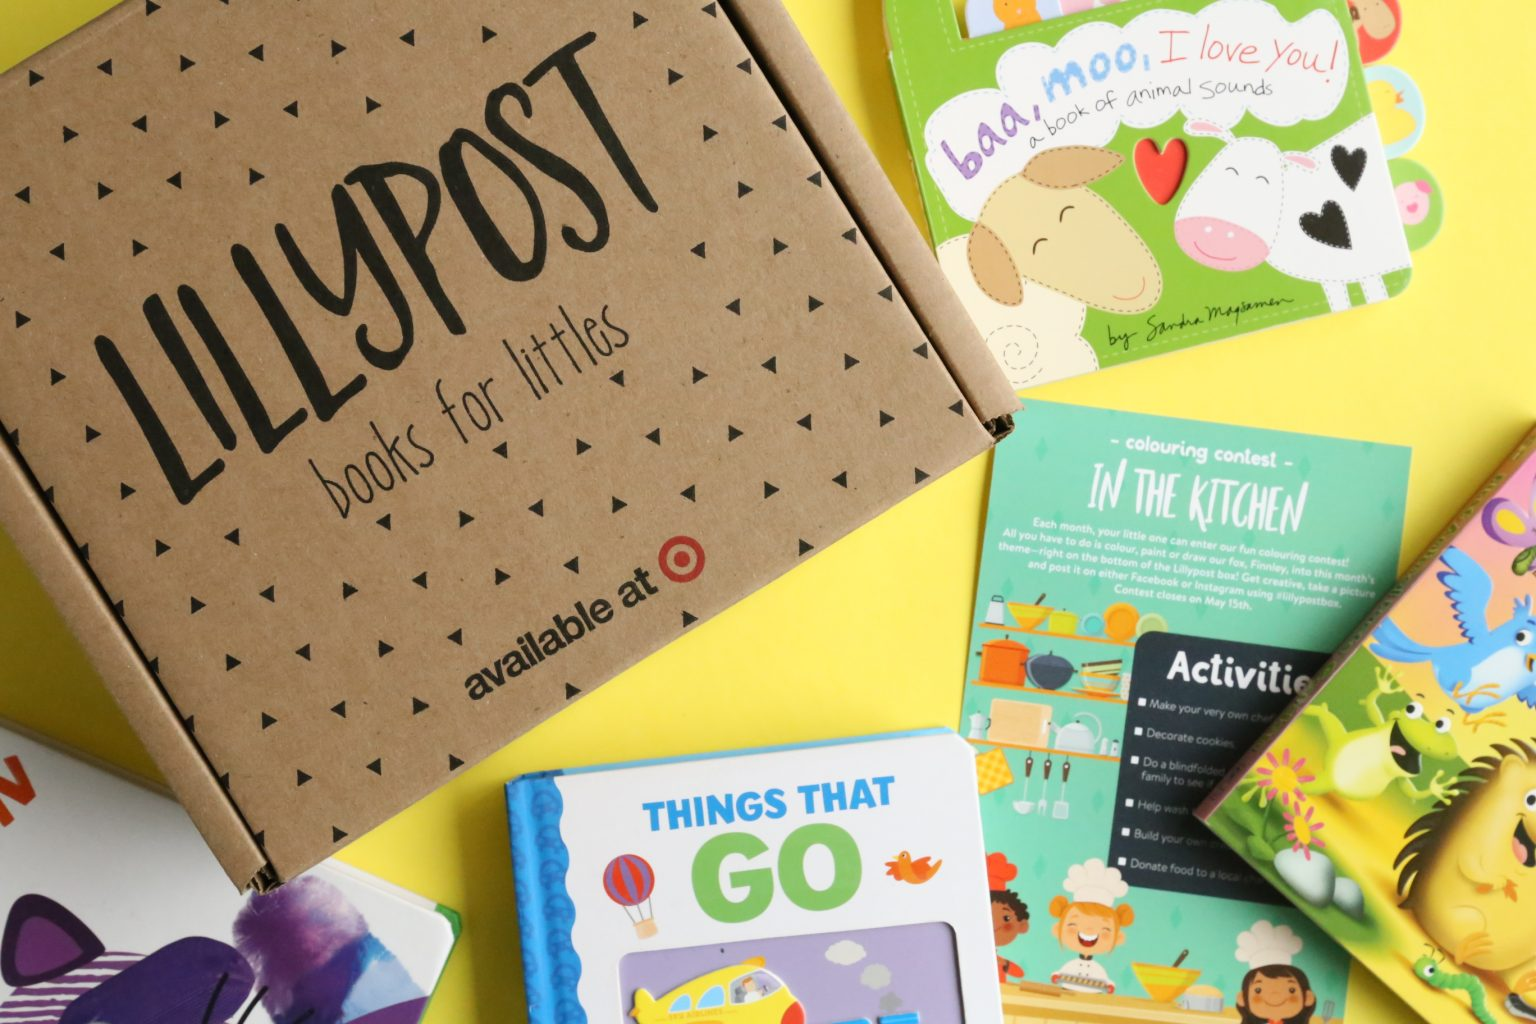 Lillypost Children's Books Subscription from $16.95 per month